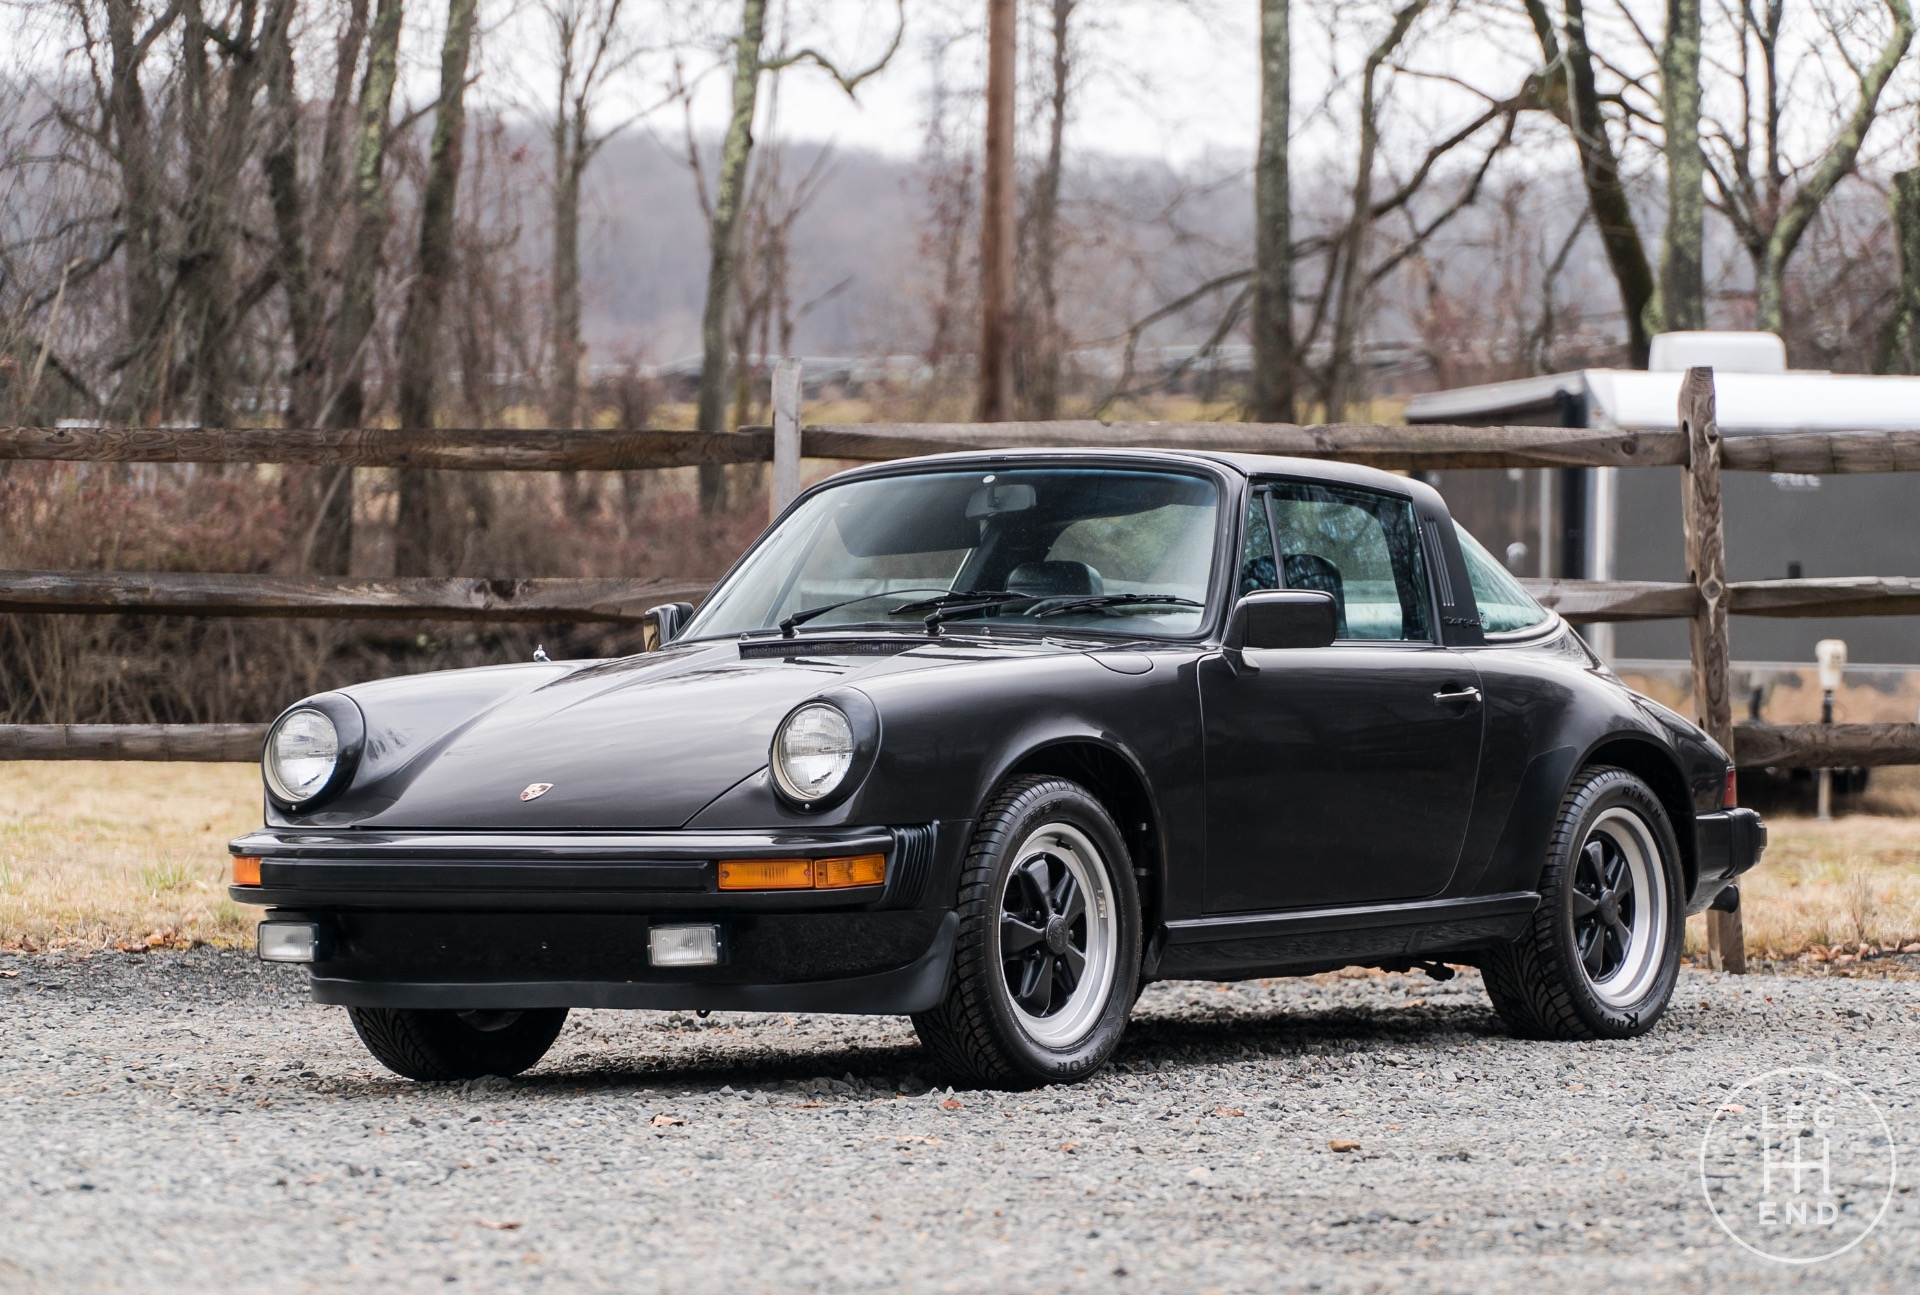 1980 porsche 911 targa sc. Black Bedroom Furniture Sets. Home Design Ideas